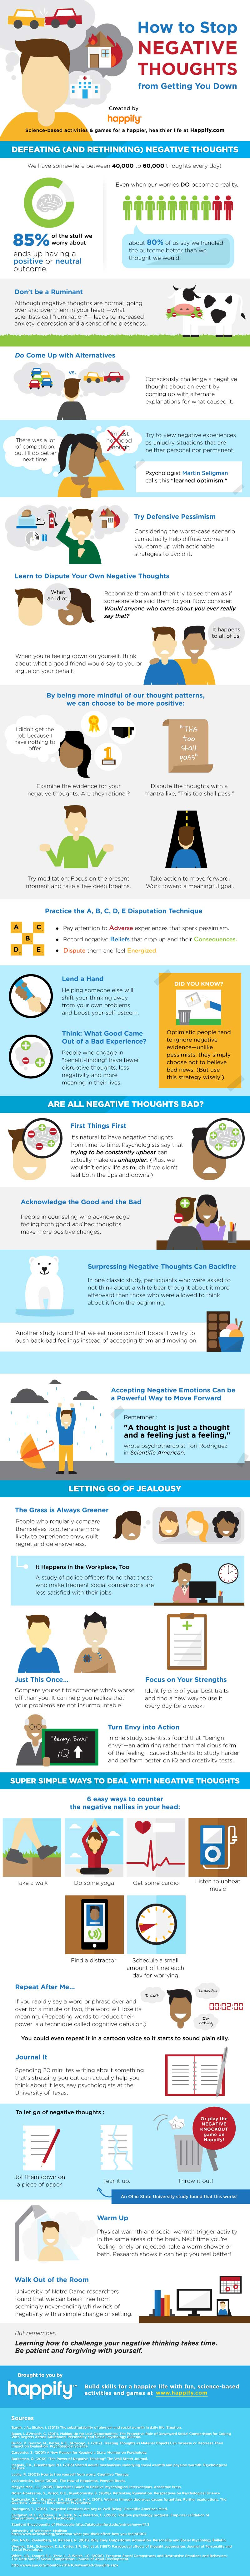 Negative Thinking Infographic